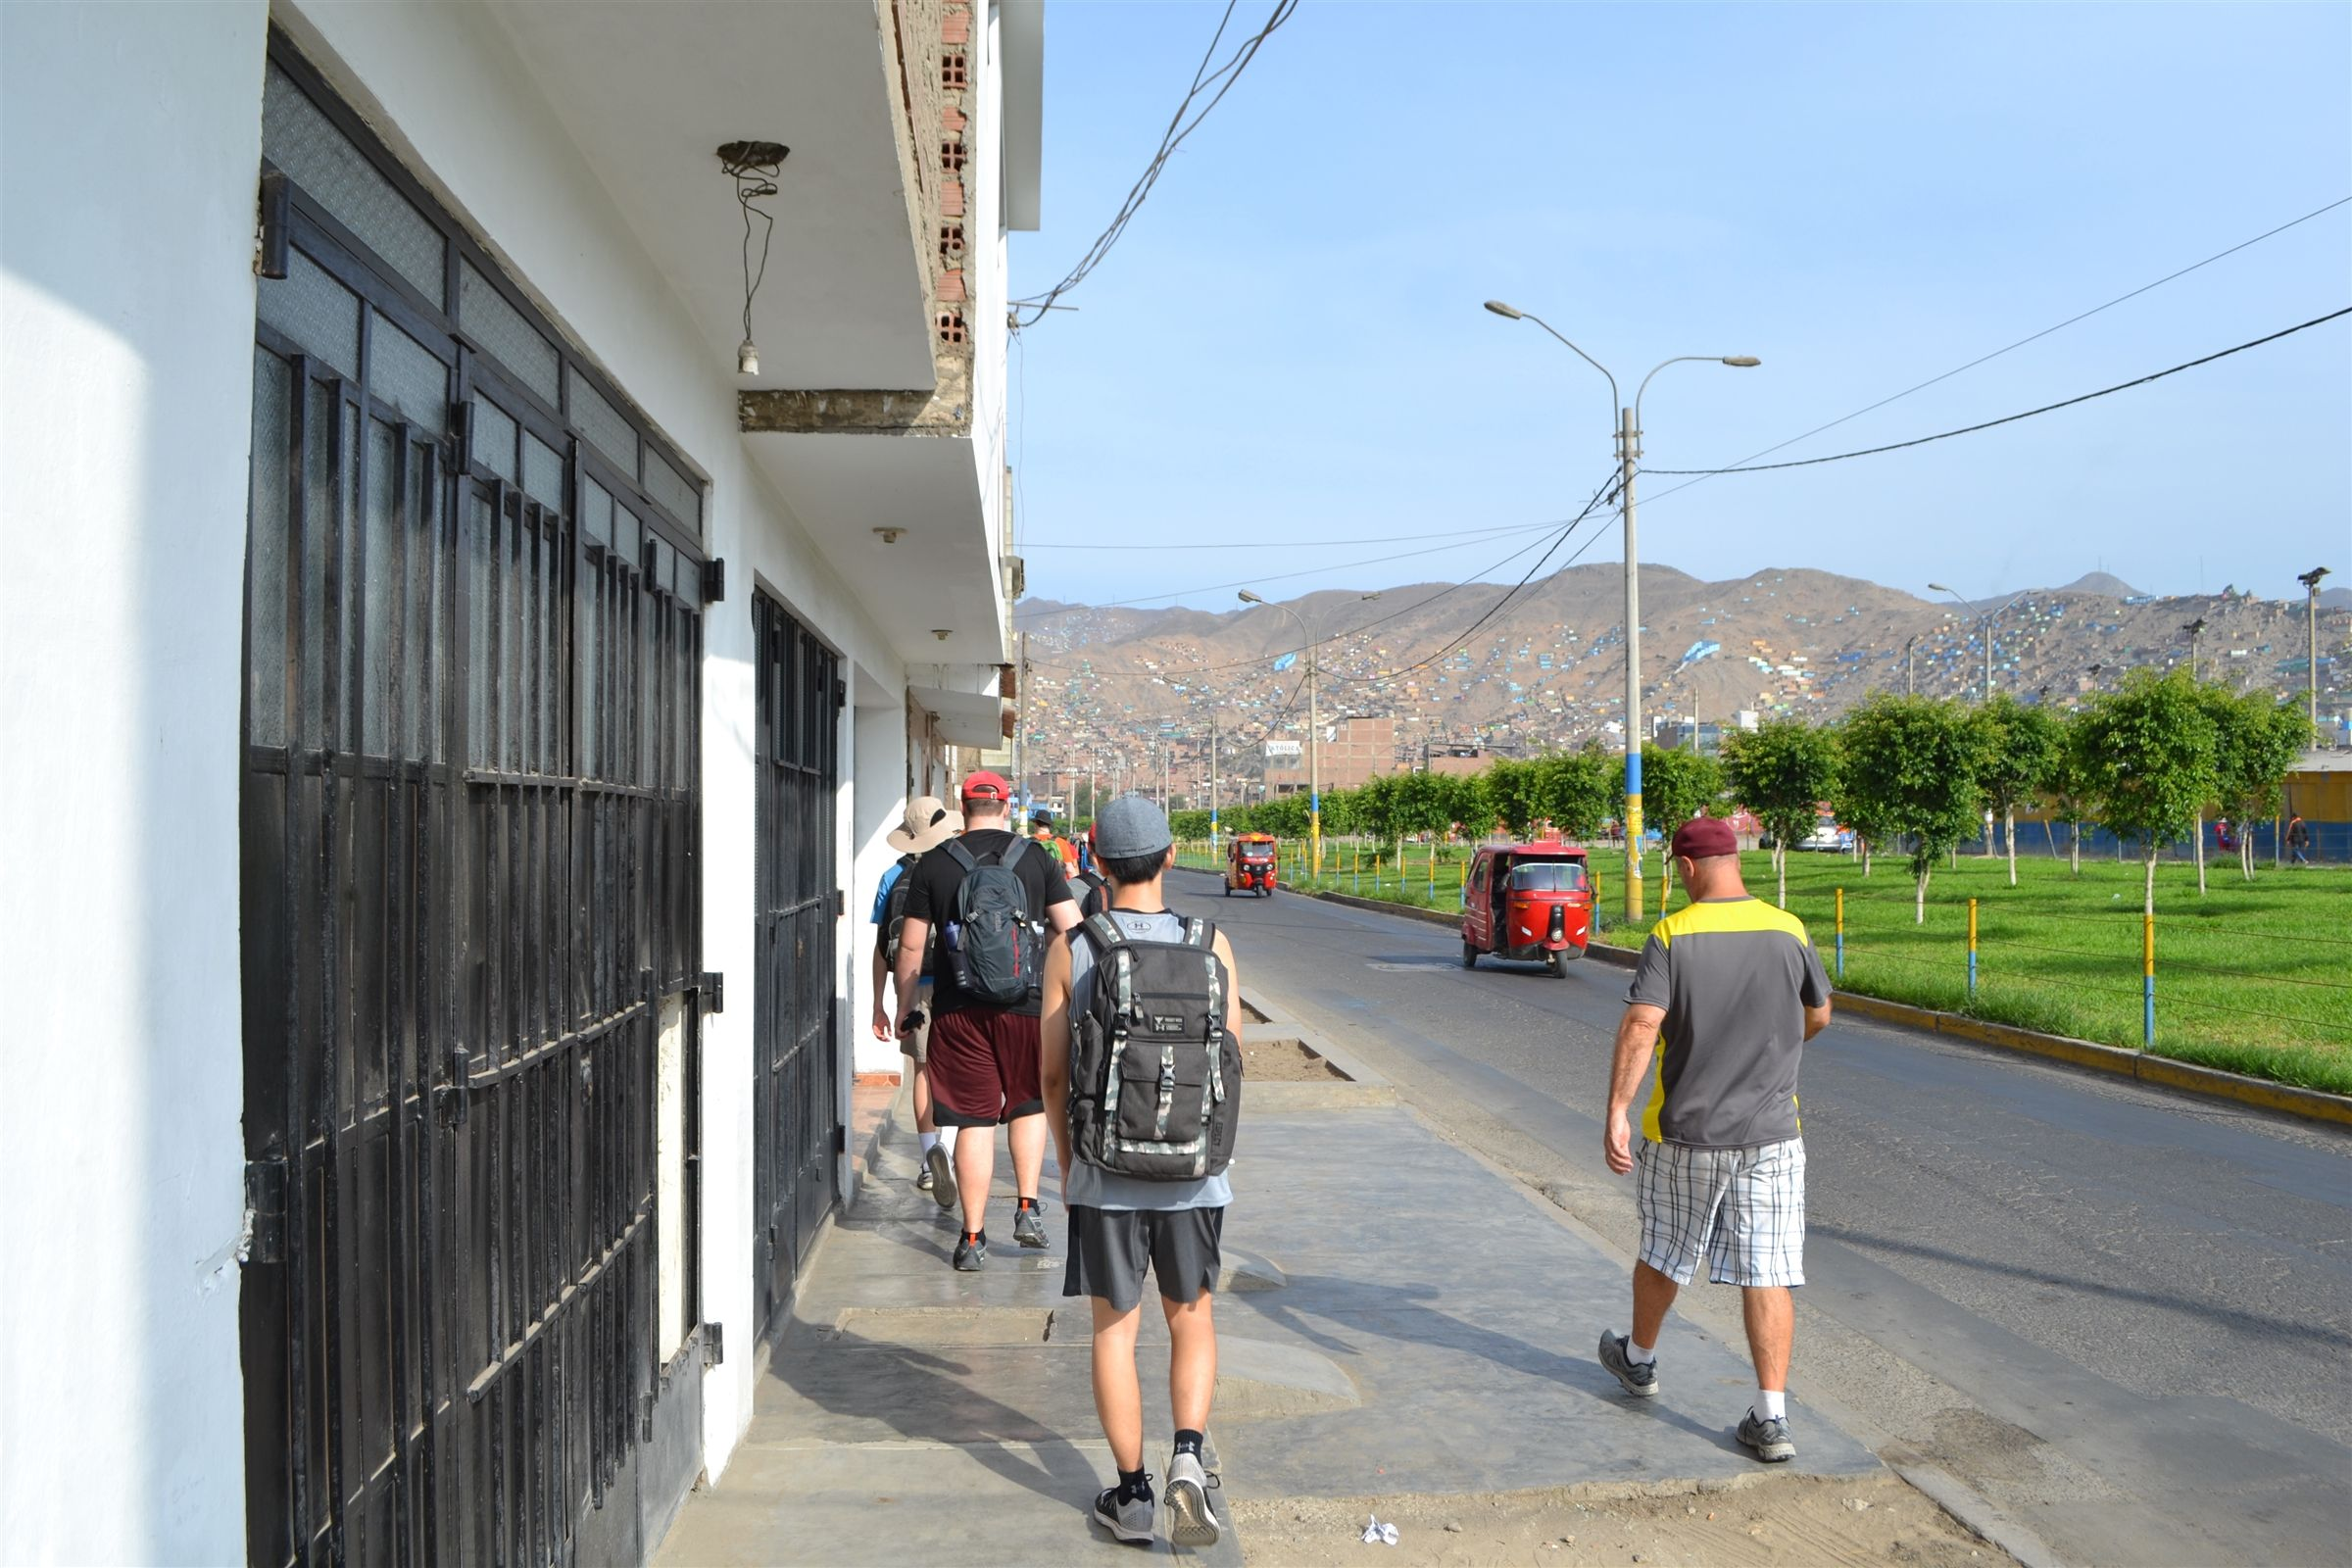 Students travel and stay in Jicamarca, one of the newer neighborhoods in the hills of Lima. The group stays in a new Christian Brothers residence attached to a family's home that school groups have constructed over the last few years.